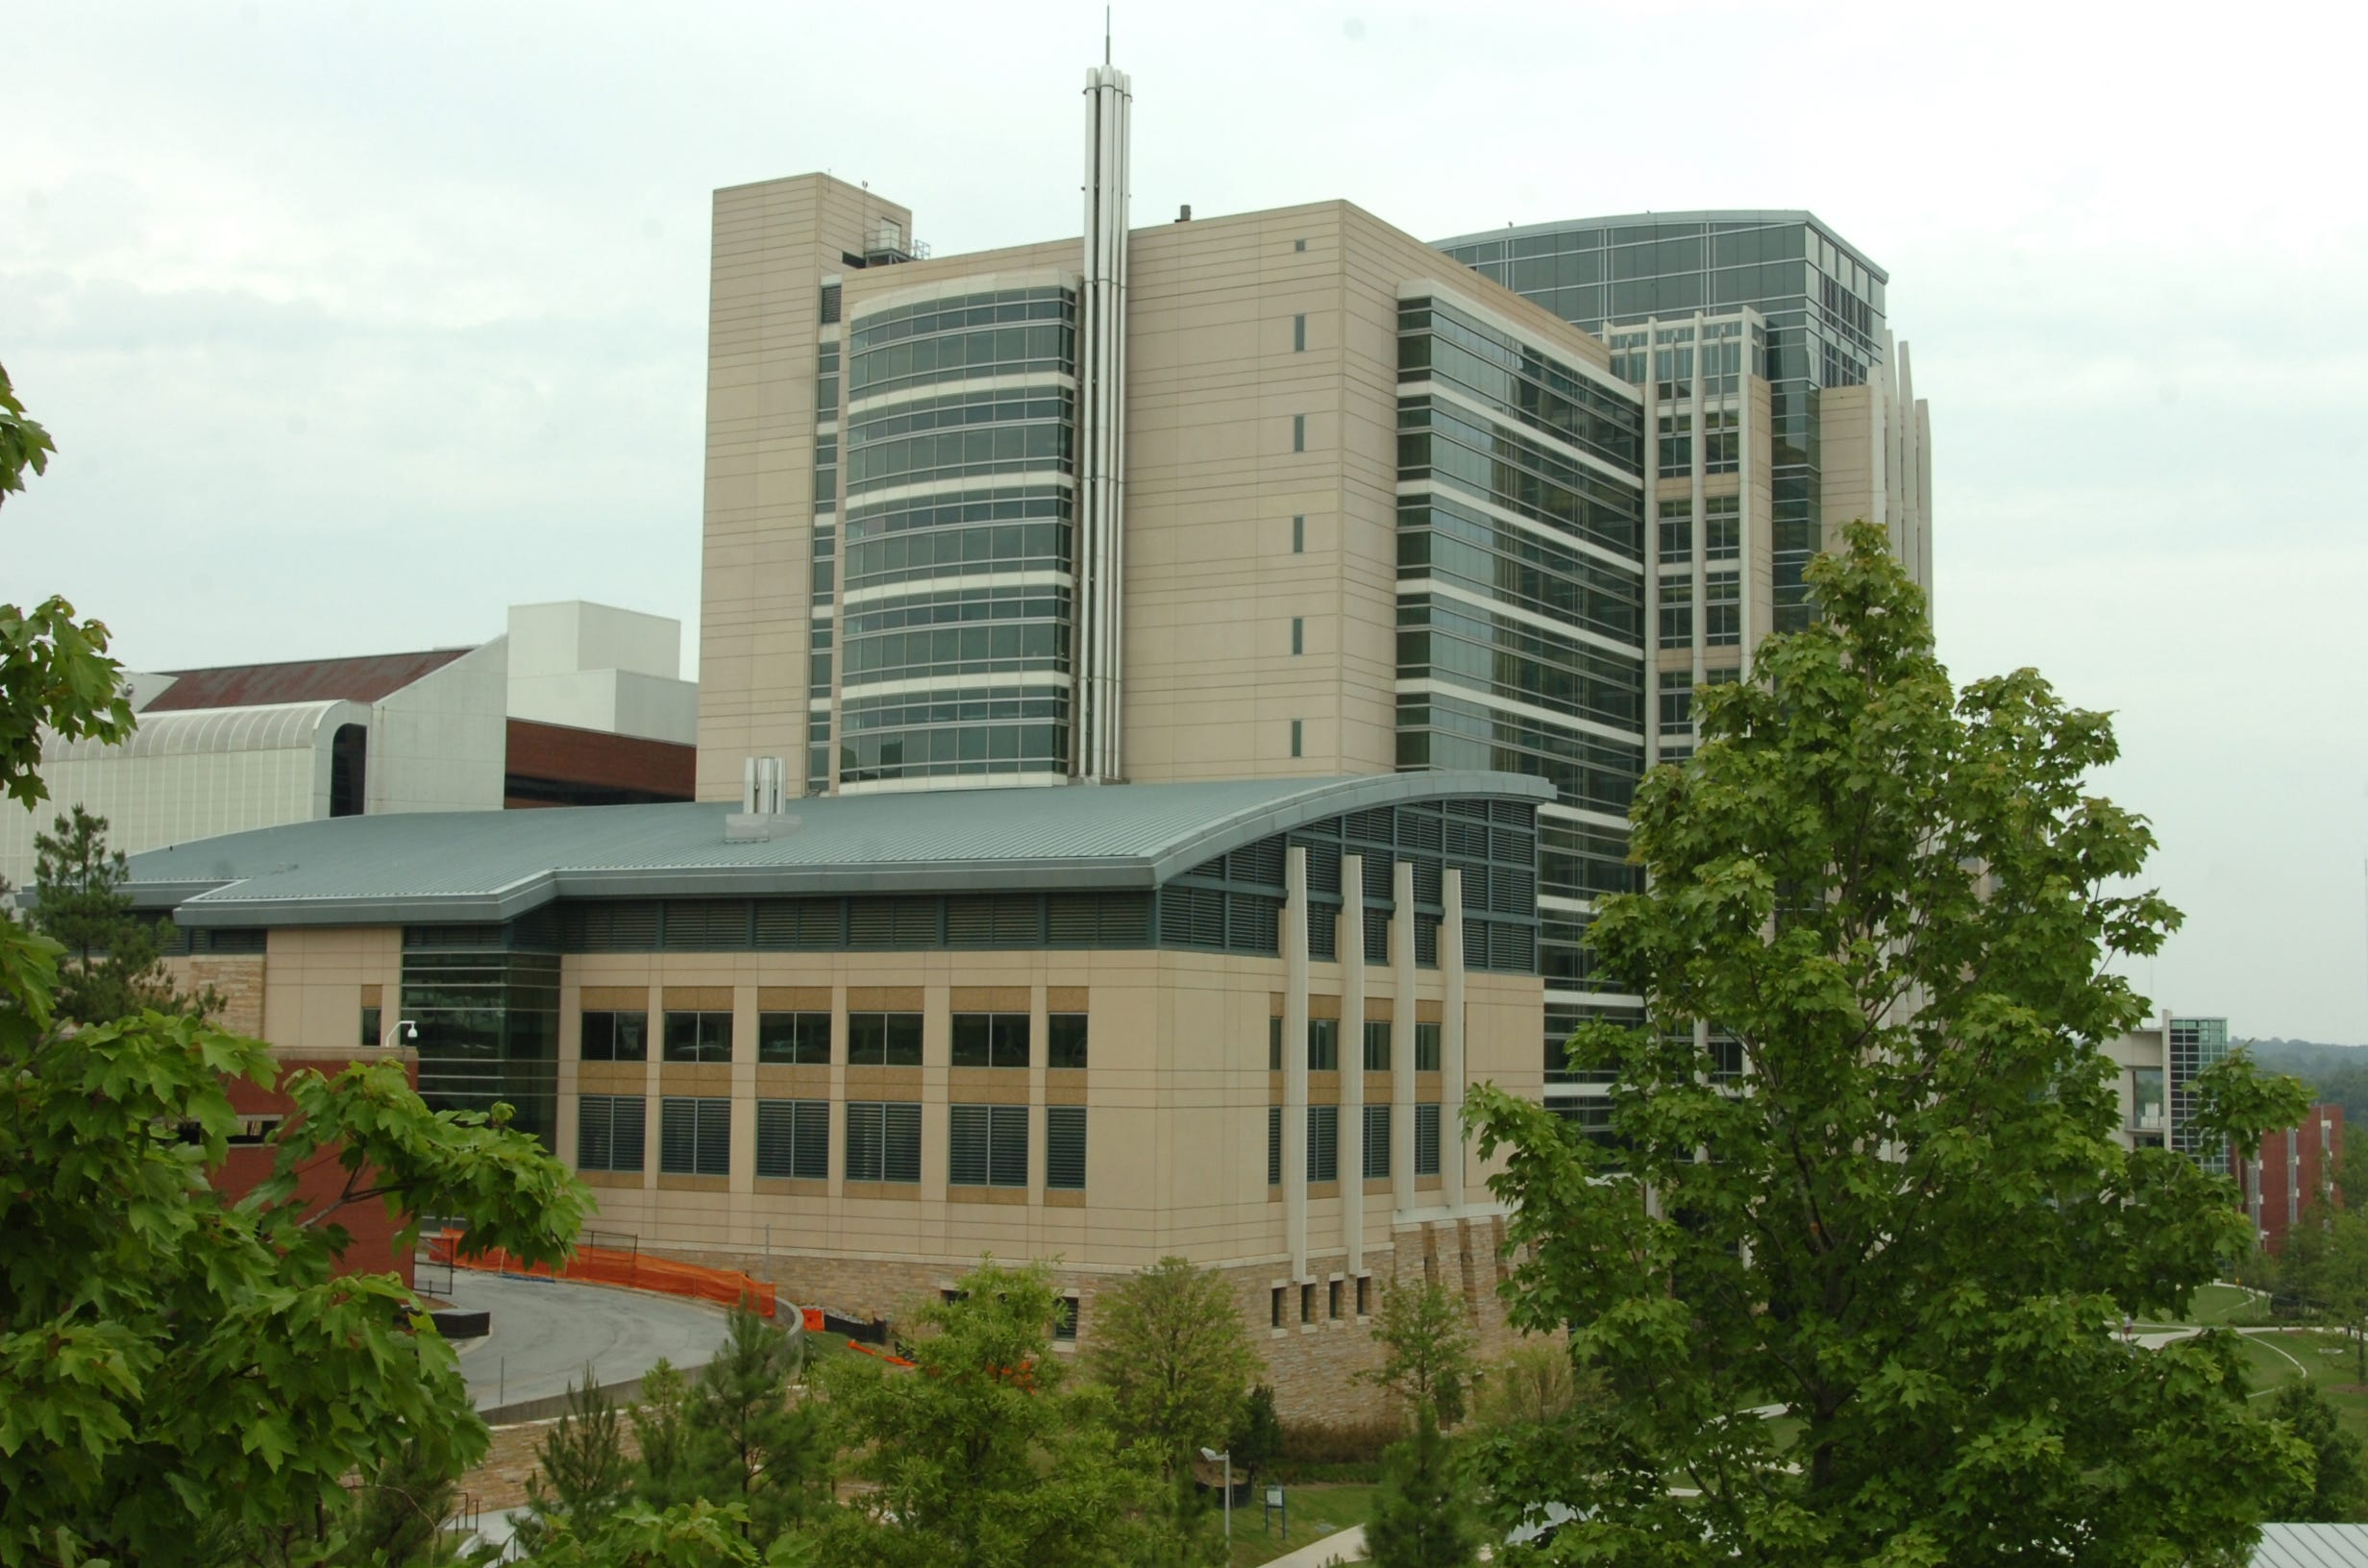 CDC's Building 18 houses numerous labs, including a suite of biosafety level 4 labs. Documents released under the Freedom of Information Act reveal a dramatic 2009 incident in a decontamination chamber in one of the BSL-4 labs.